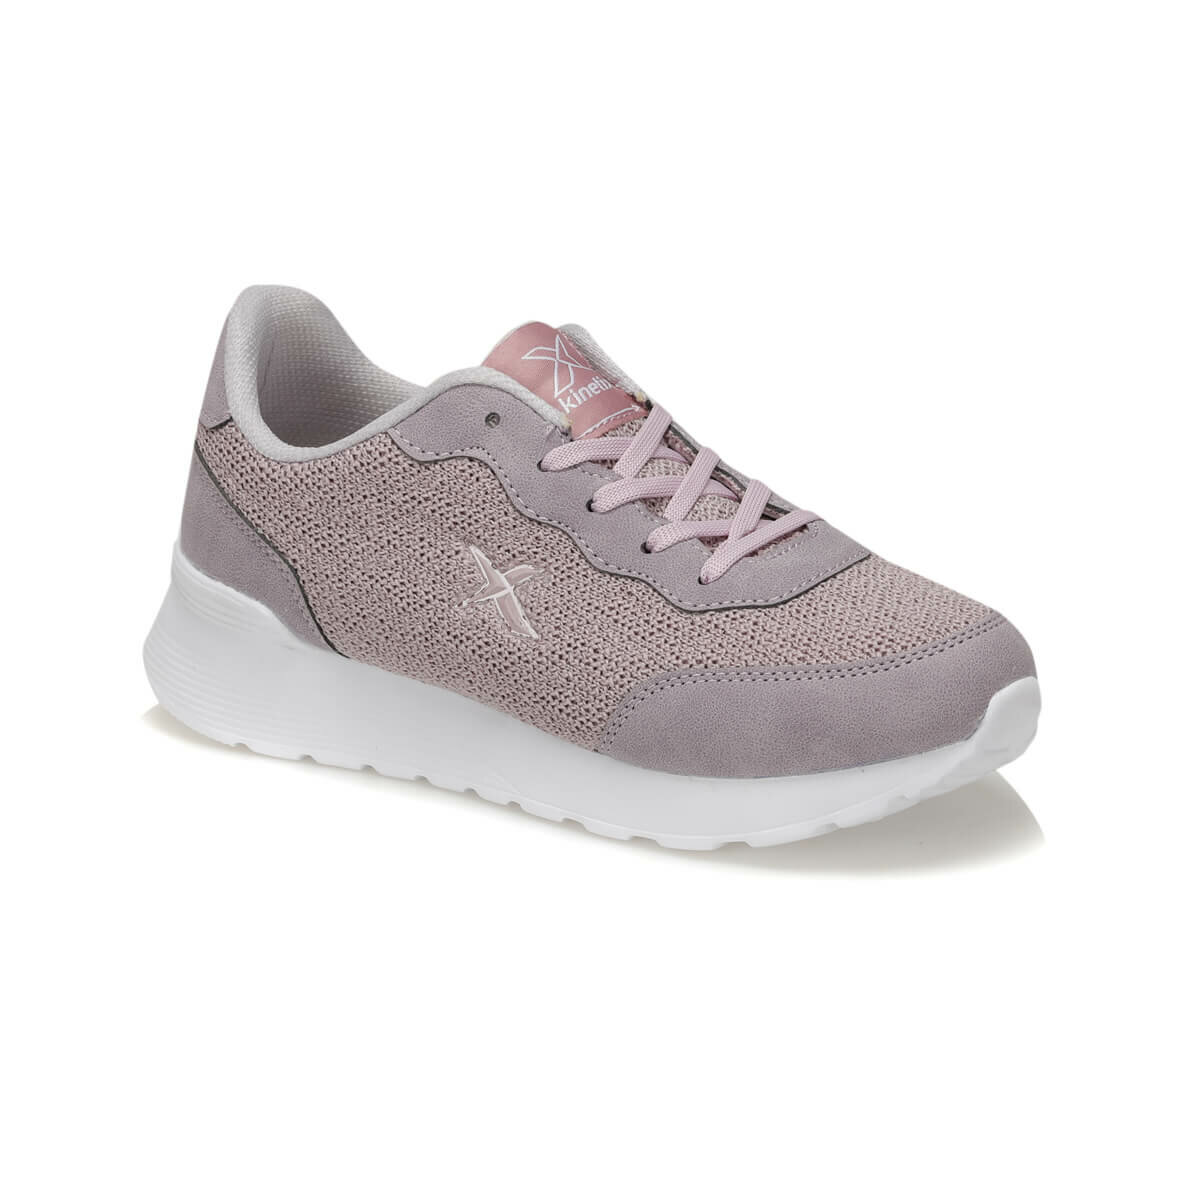 FLO Women Sneaker Shoes Women Sneakers Fashion Summer Light Breathable Shoes Woman Fast Delivery Tenis Feminino Women Casual Shoes KINETIX PIN ON W Lilac